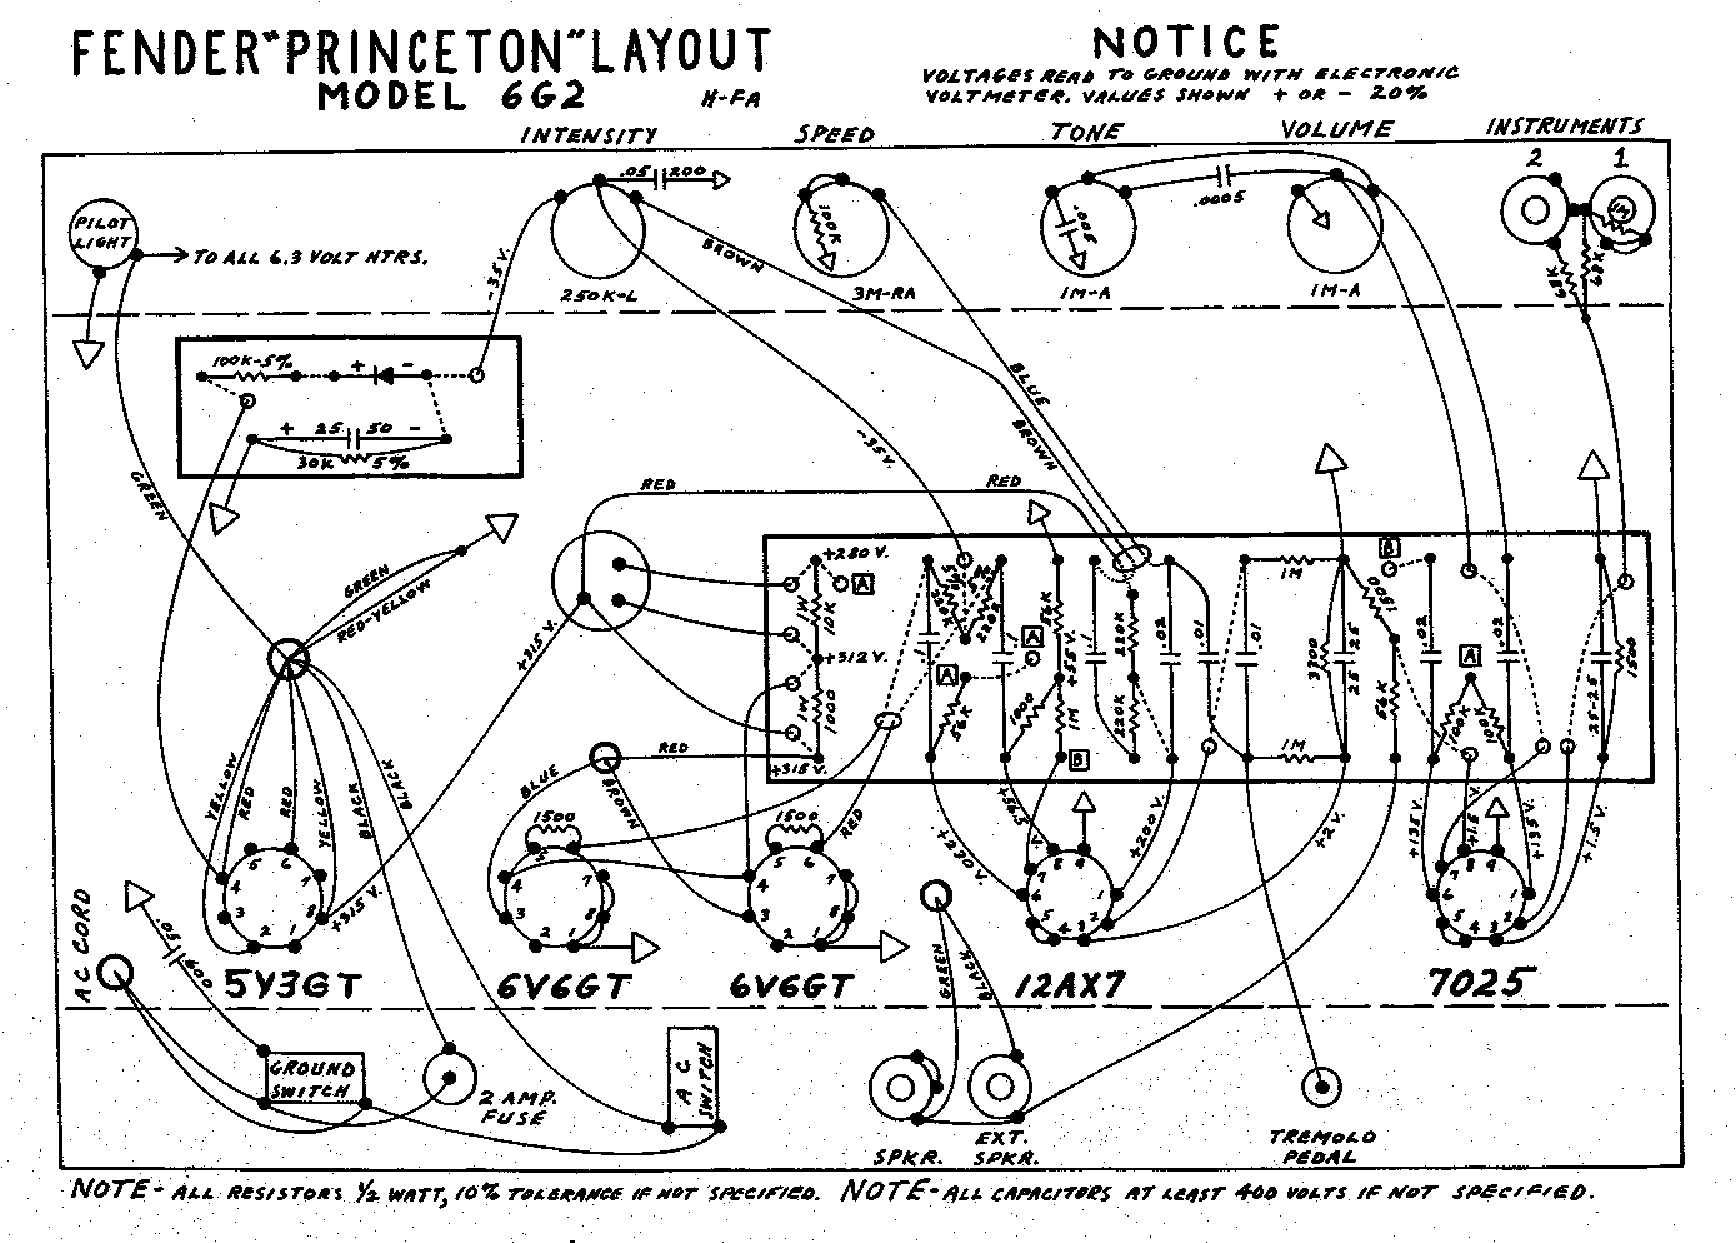 fender princeton-6g2-layout service manual download ... fender strat wiring diagram 5 way switch fender princeton wiring diagram